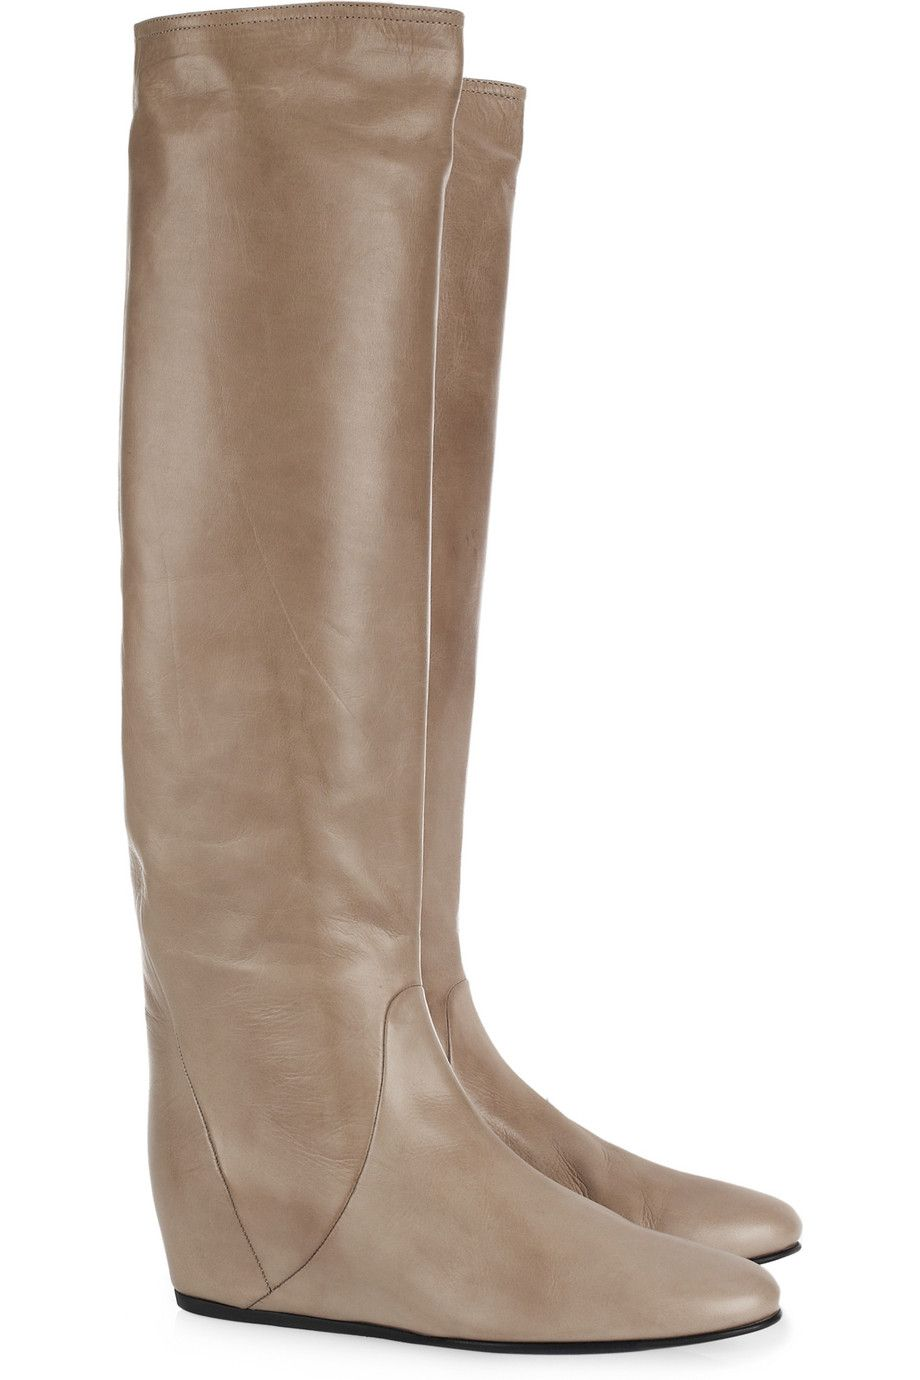 Concealed-wedge crinkled-leather knee boots by Lanvin